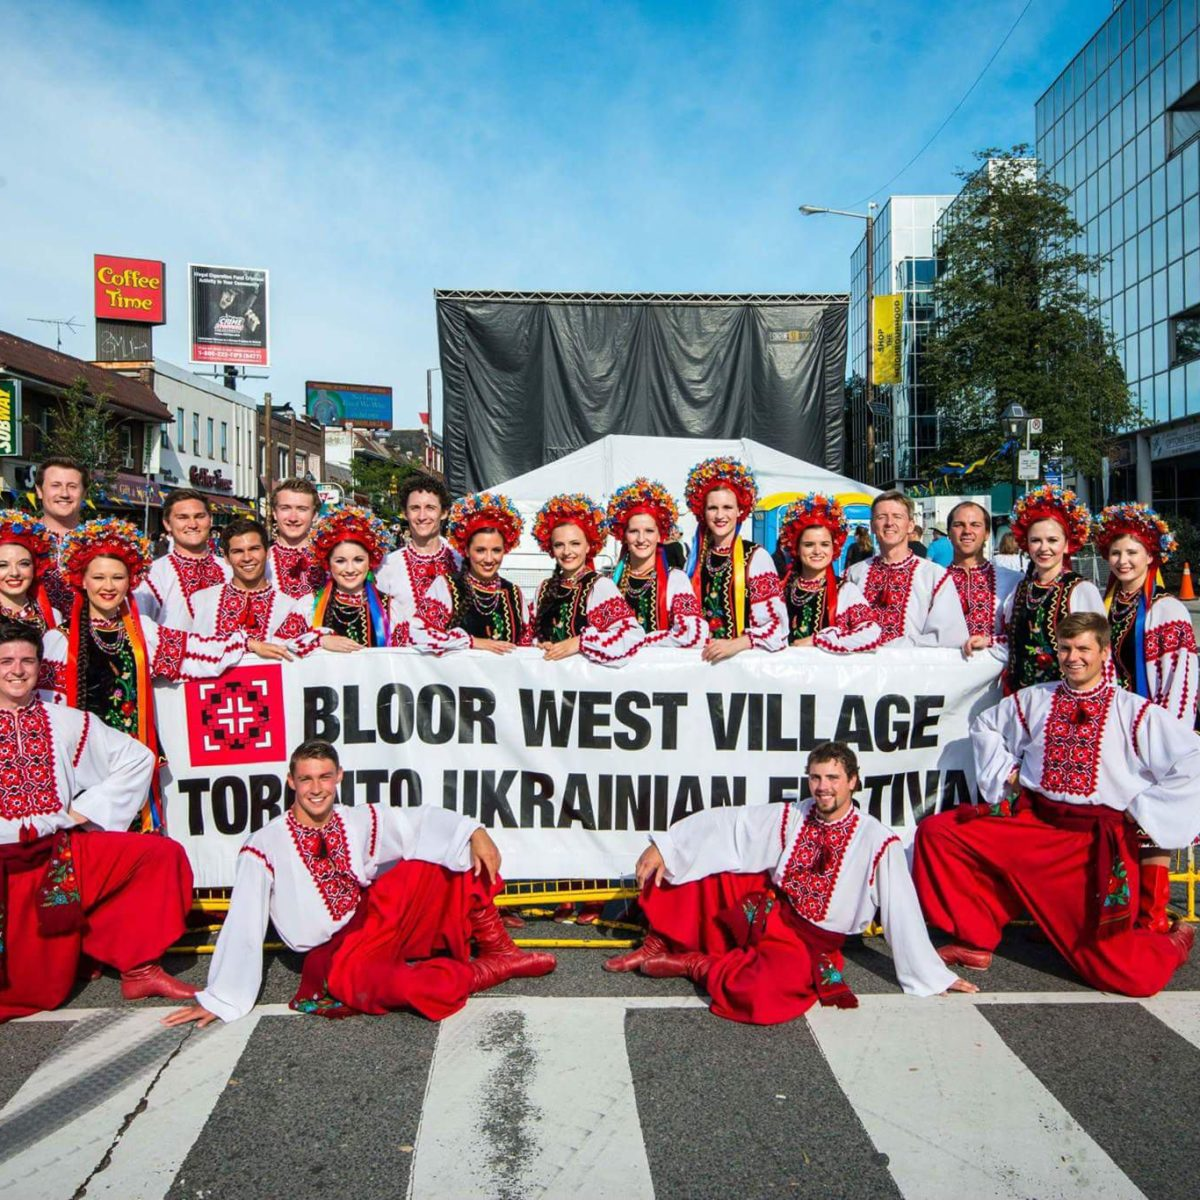 The Bloor West Village Toronto Ukrainian Festival